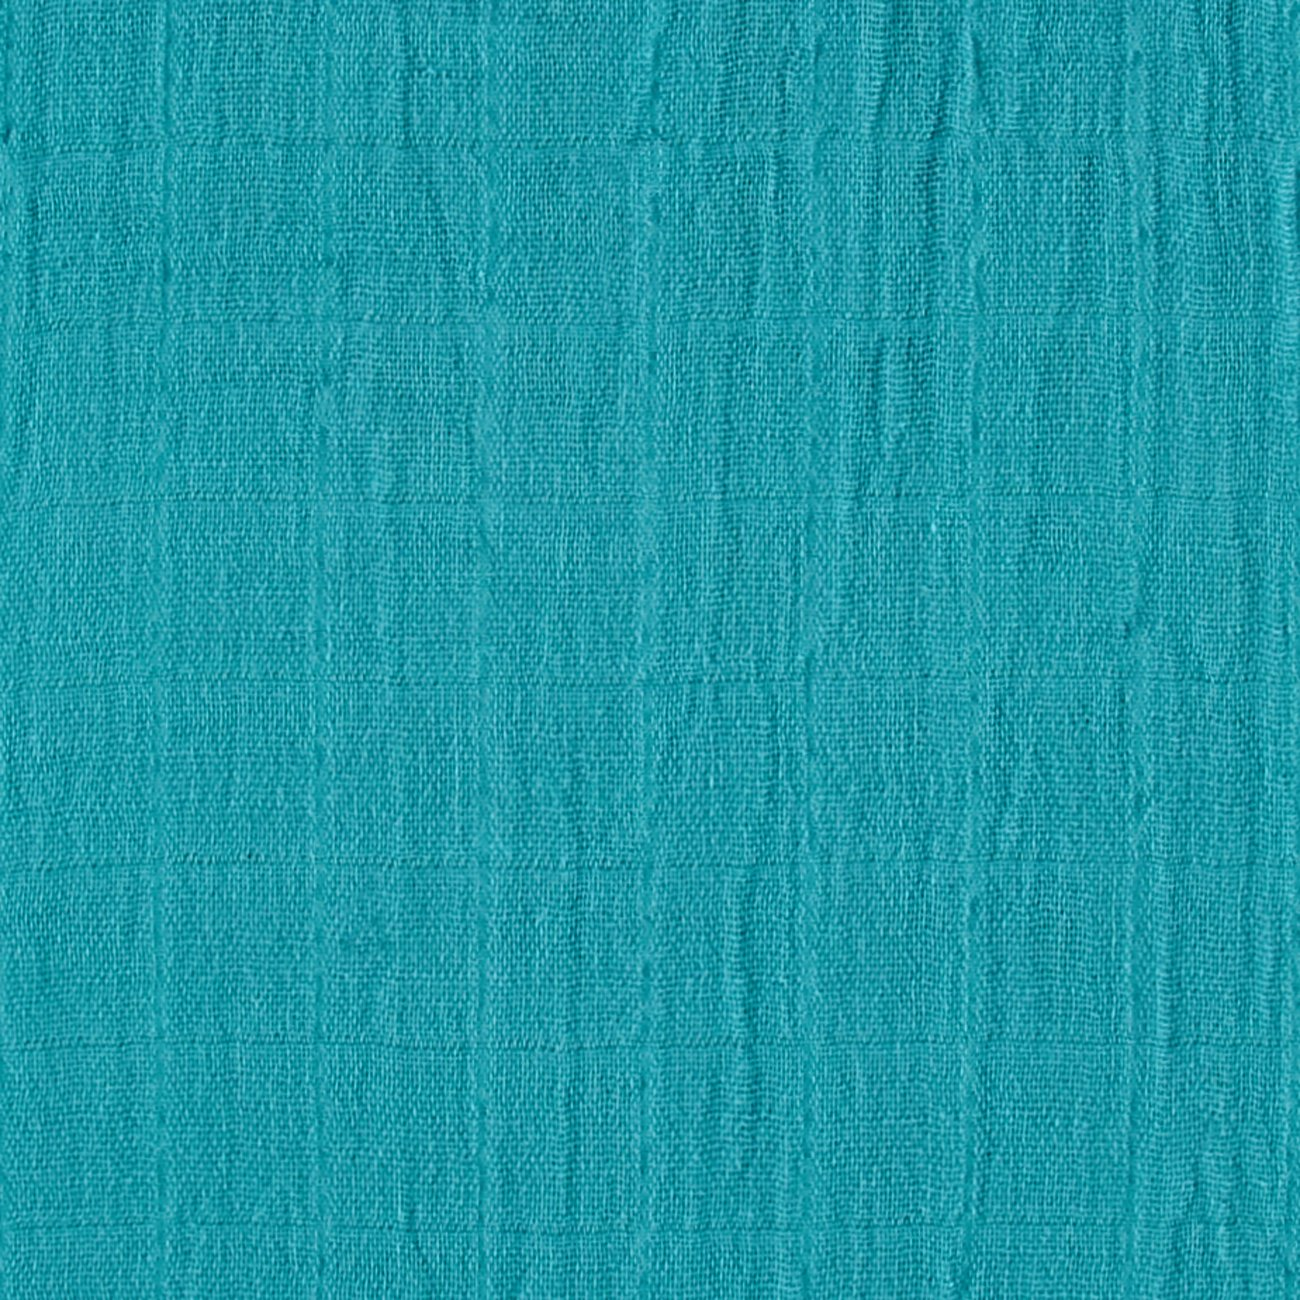 Shannon Fabrics Shannon Embrace Double Gauze Teal Fabric By The Yard